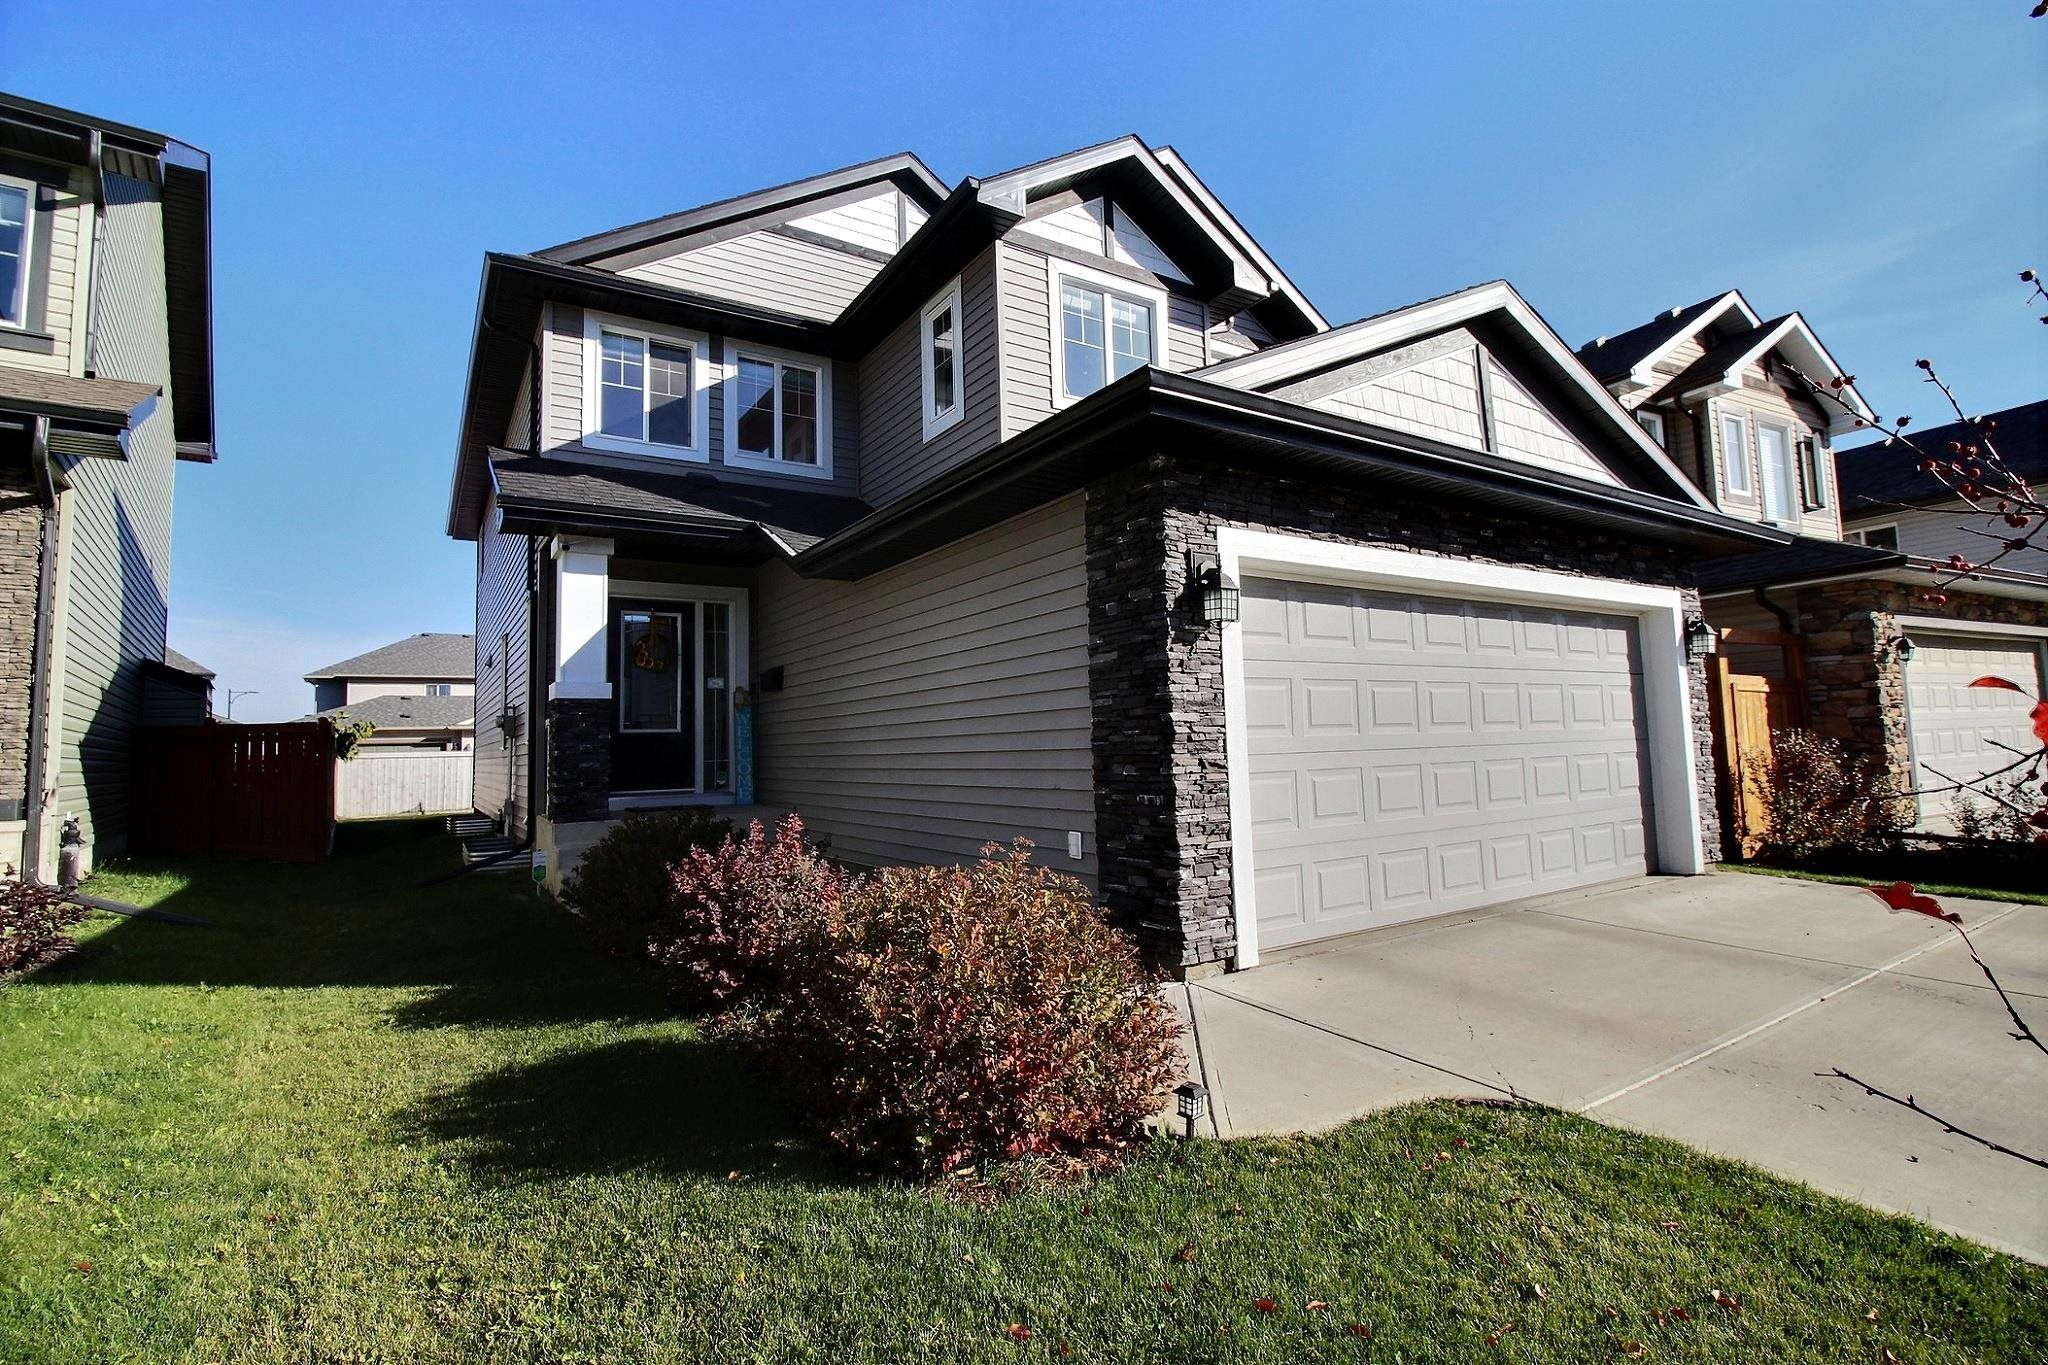 Main Photo: 5 MEADOWVIEW Landing: Spruce Grove House for sale : MLS®# E4266120